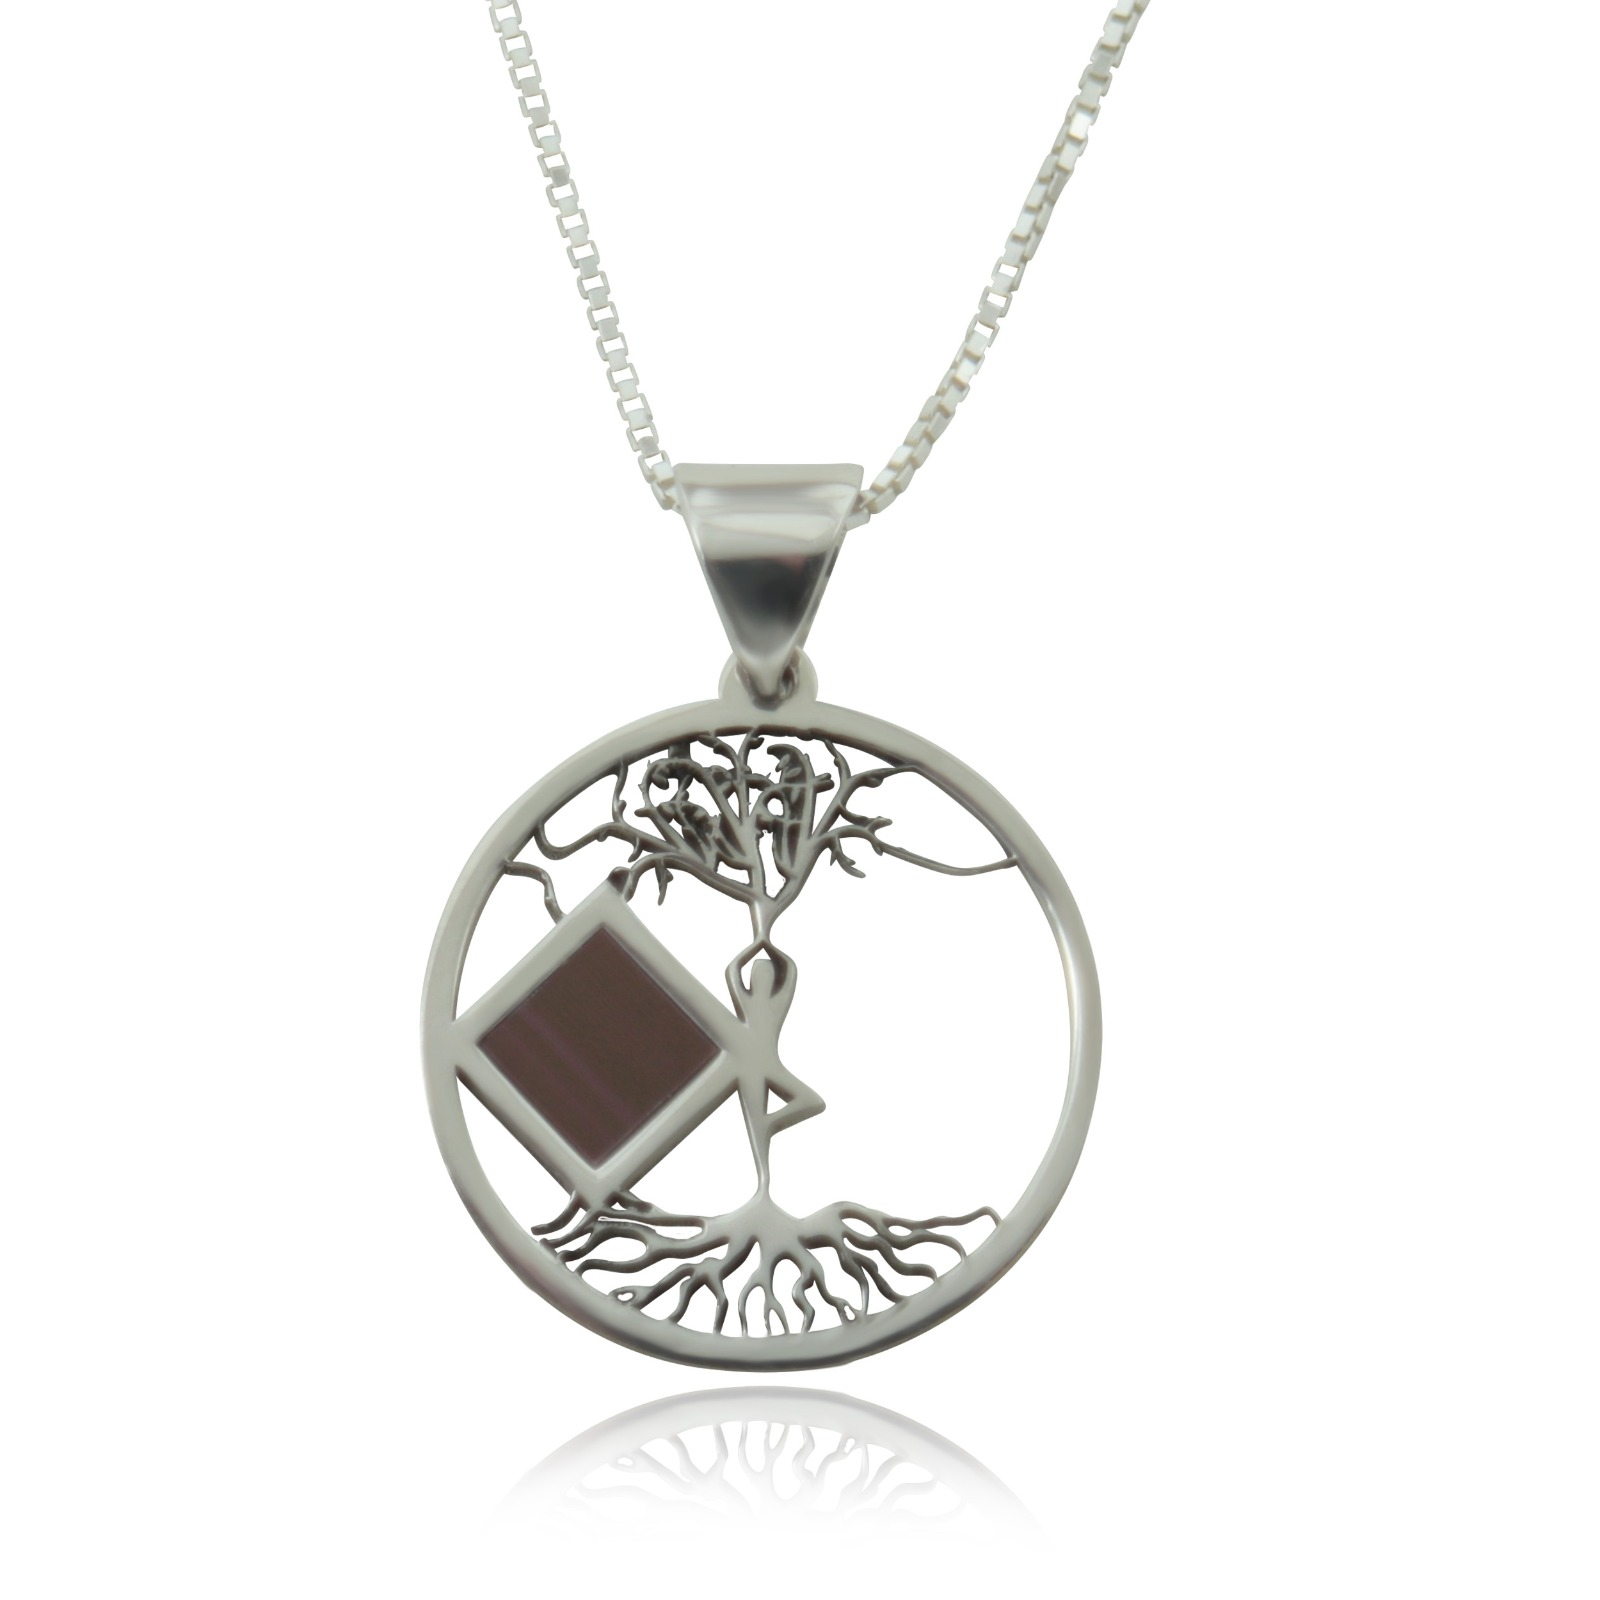 ETERNAL TREE OF LIFE NECKLACE OLD HEBREW BIBLE (TANAKH)